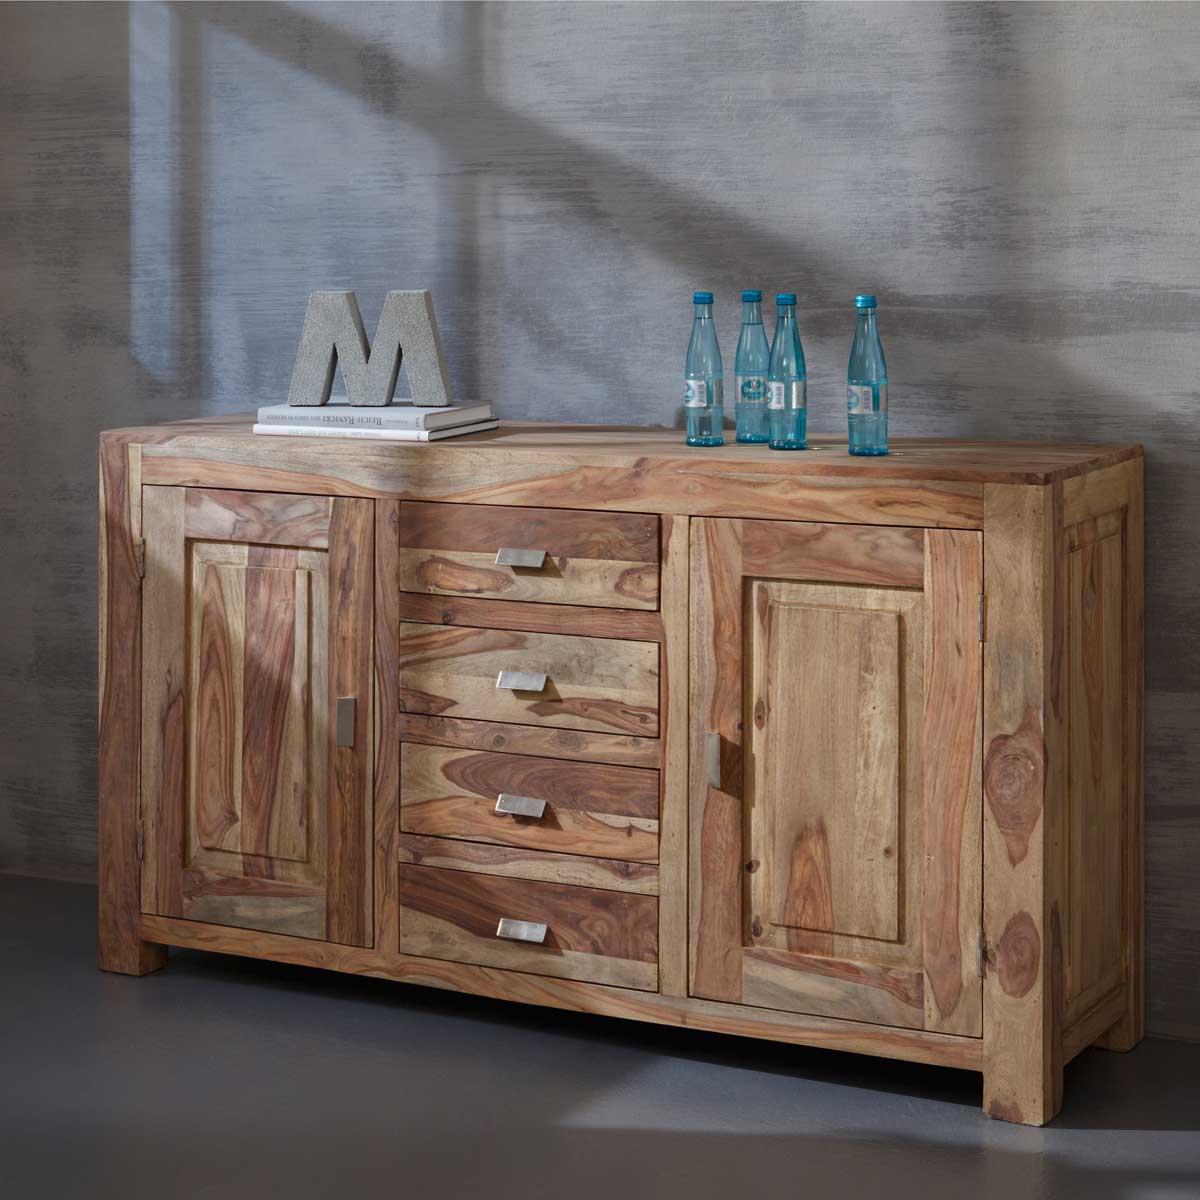 Kommode yoga sheesham massivholz schrank sideboard for Kommode yoga shisham